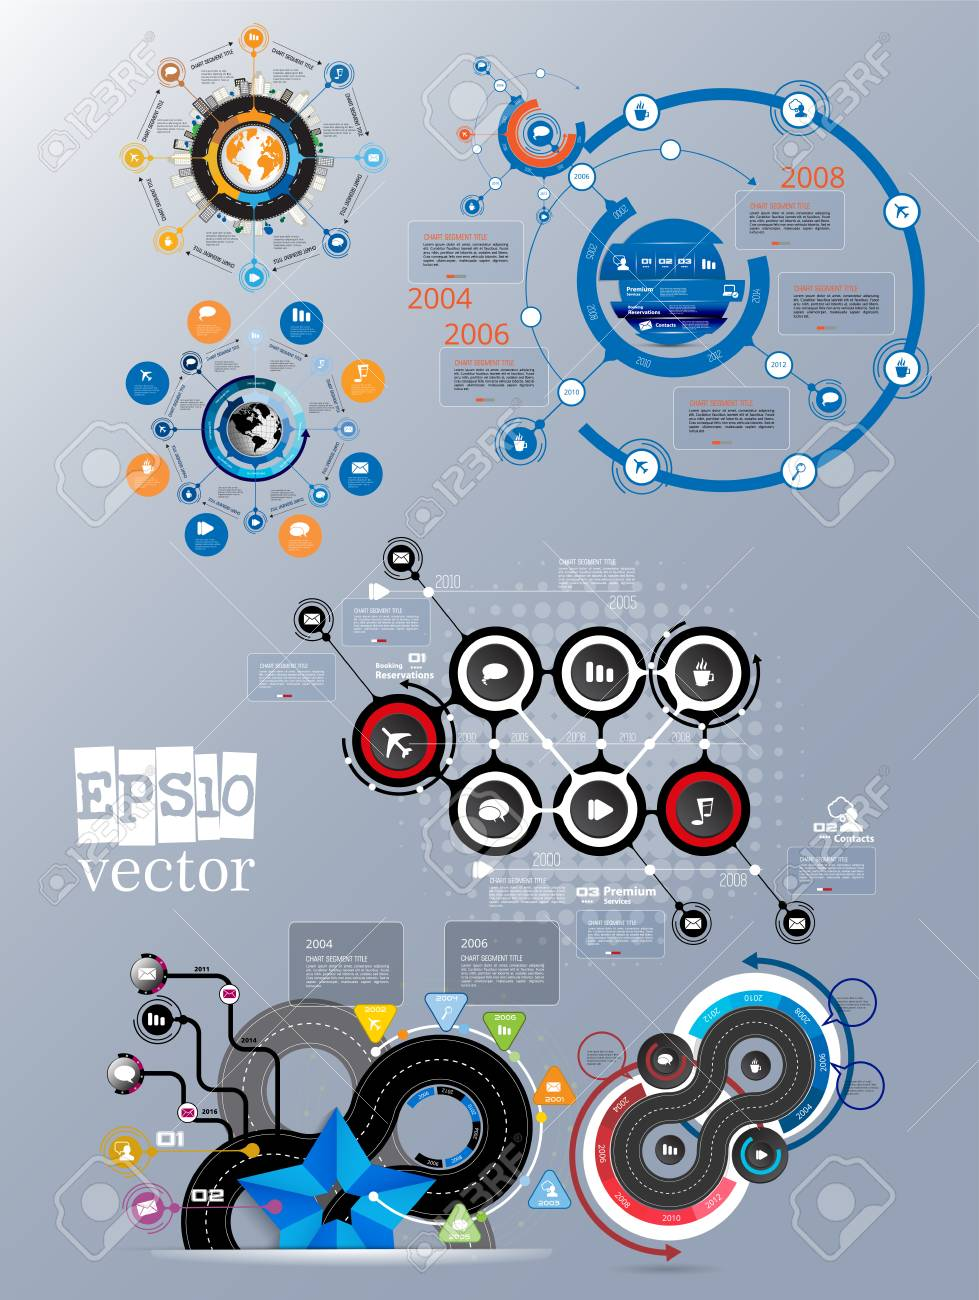 Infographic vector elements for business illustration - 120245935